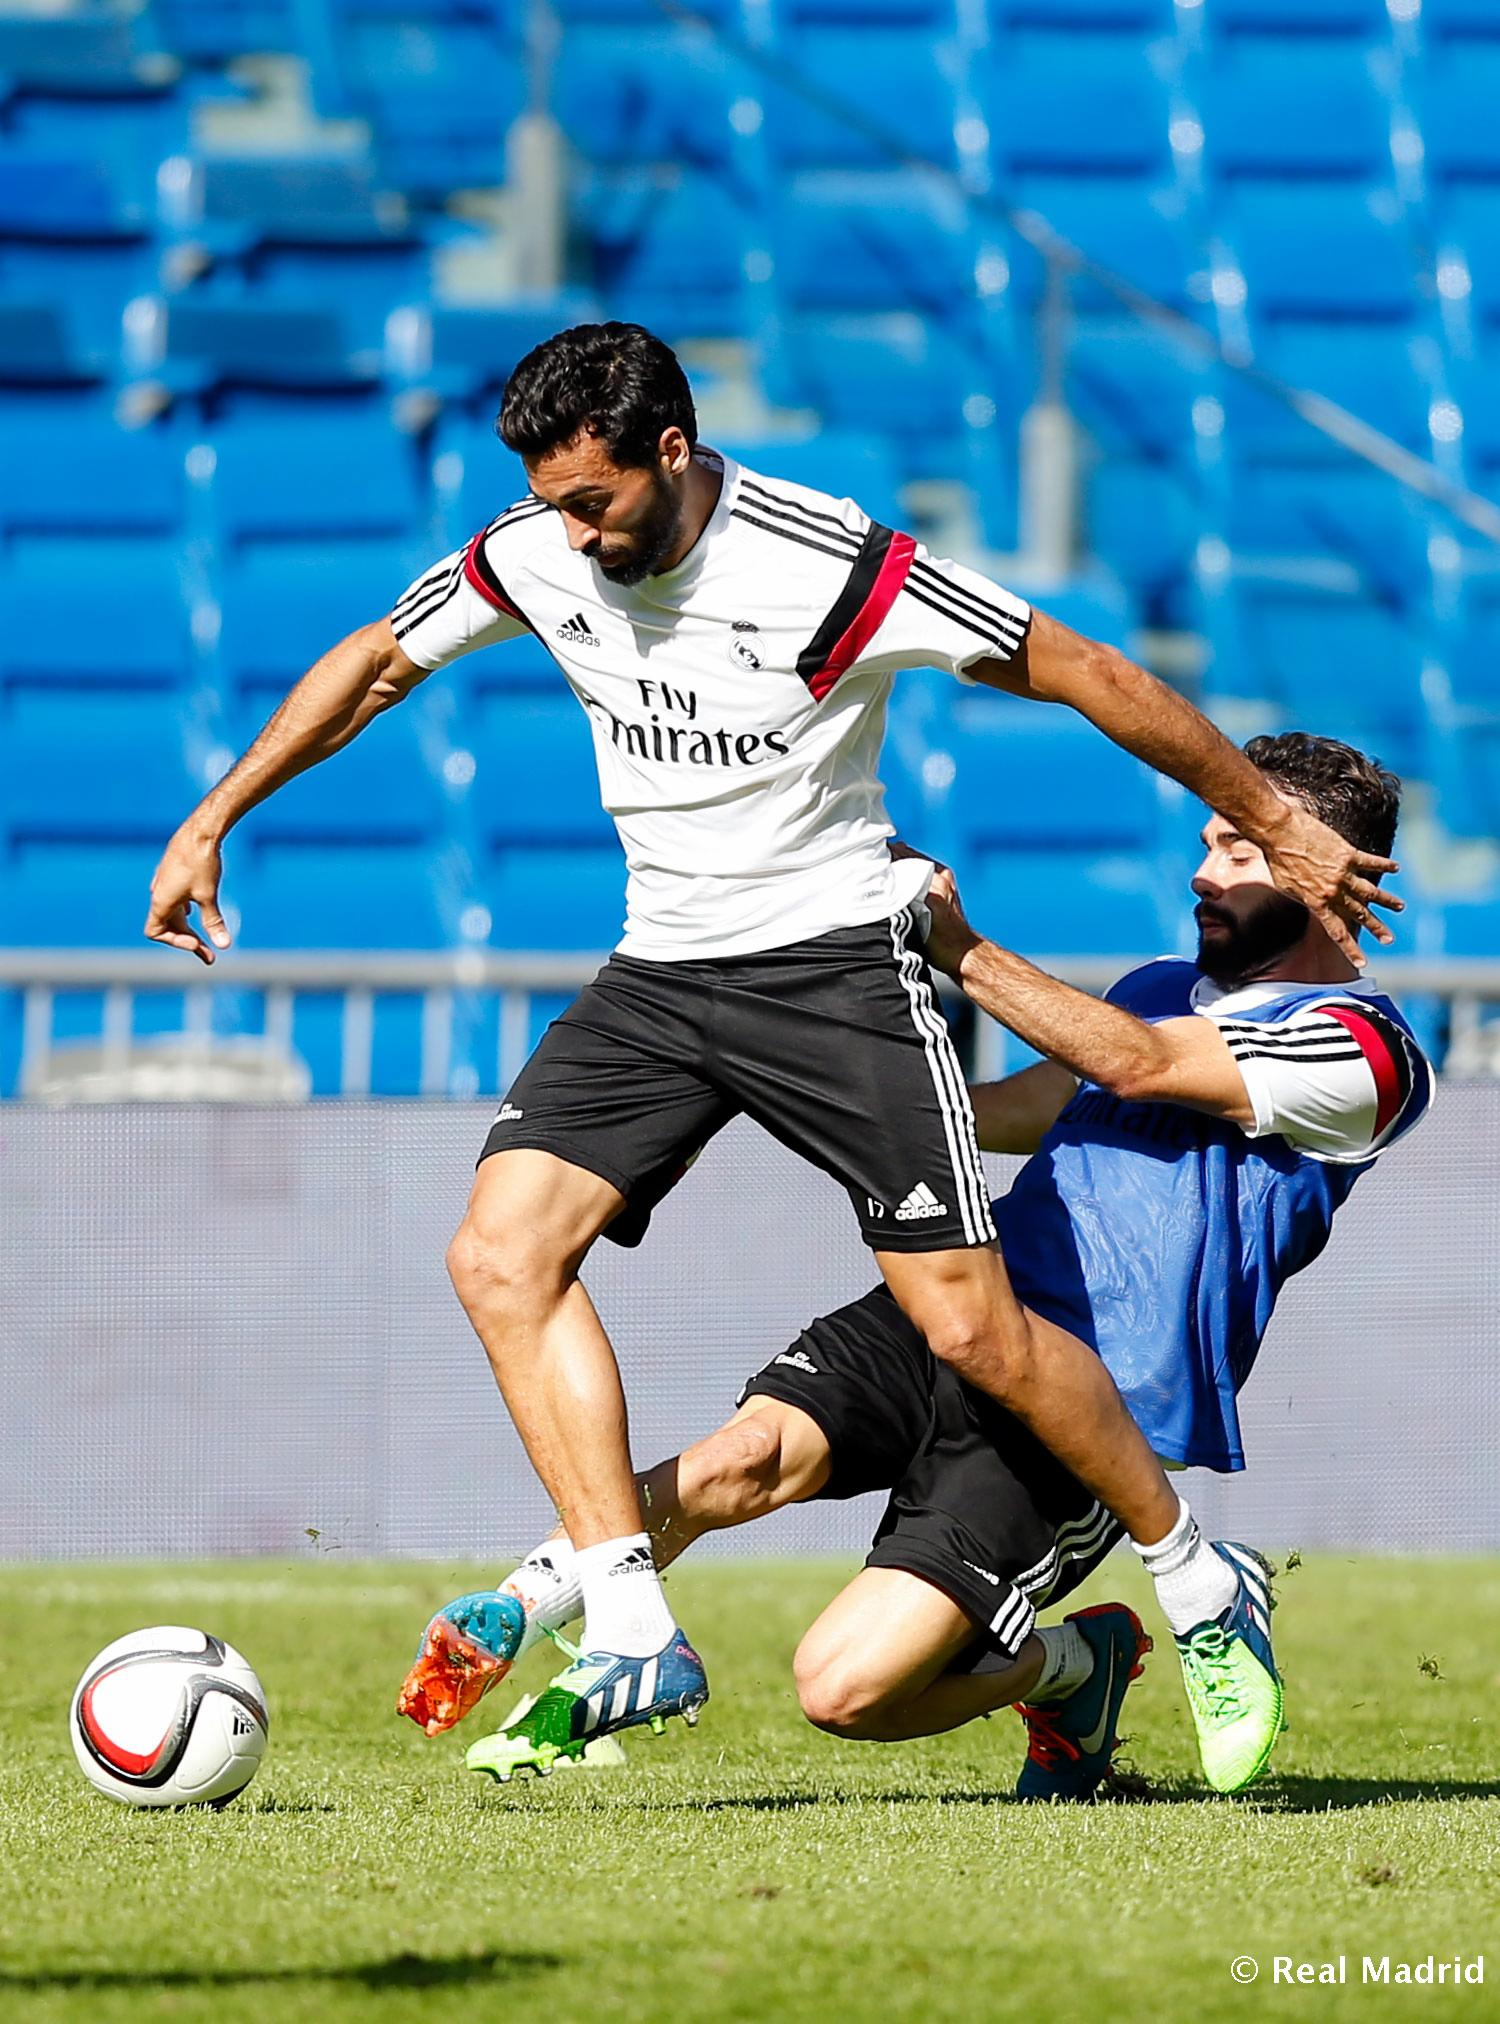 Real Madrid - Entrenamiento del Real Madrid - 28-10-2014